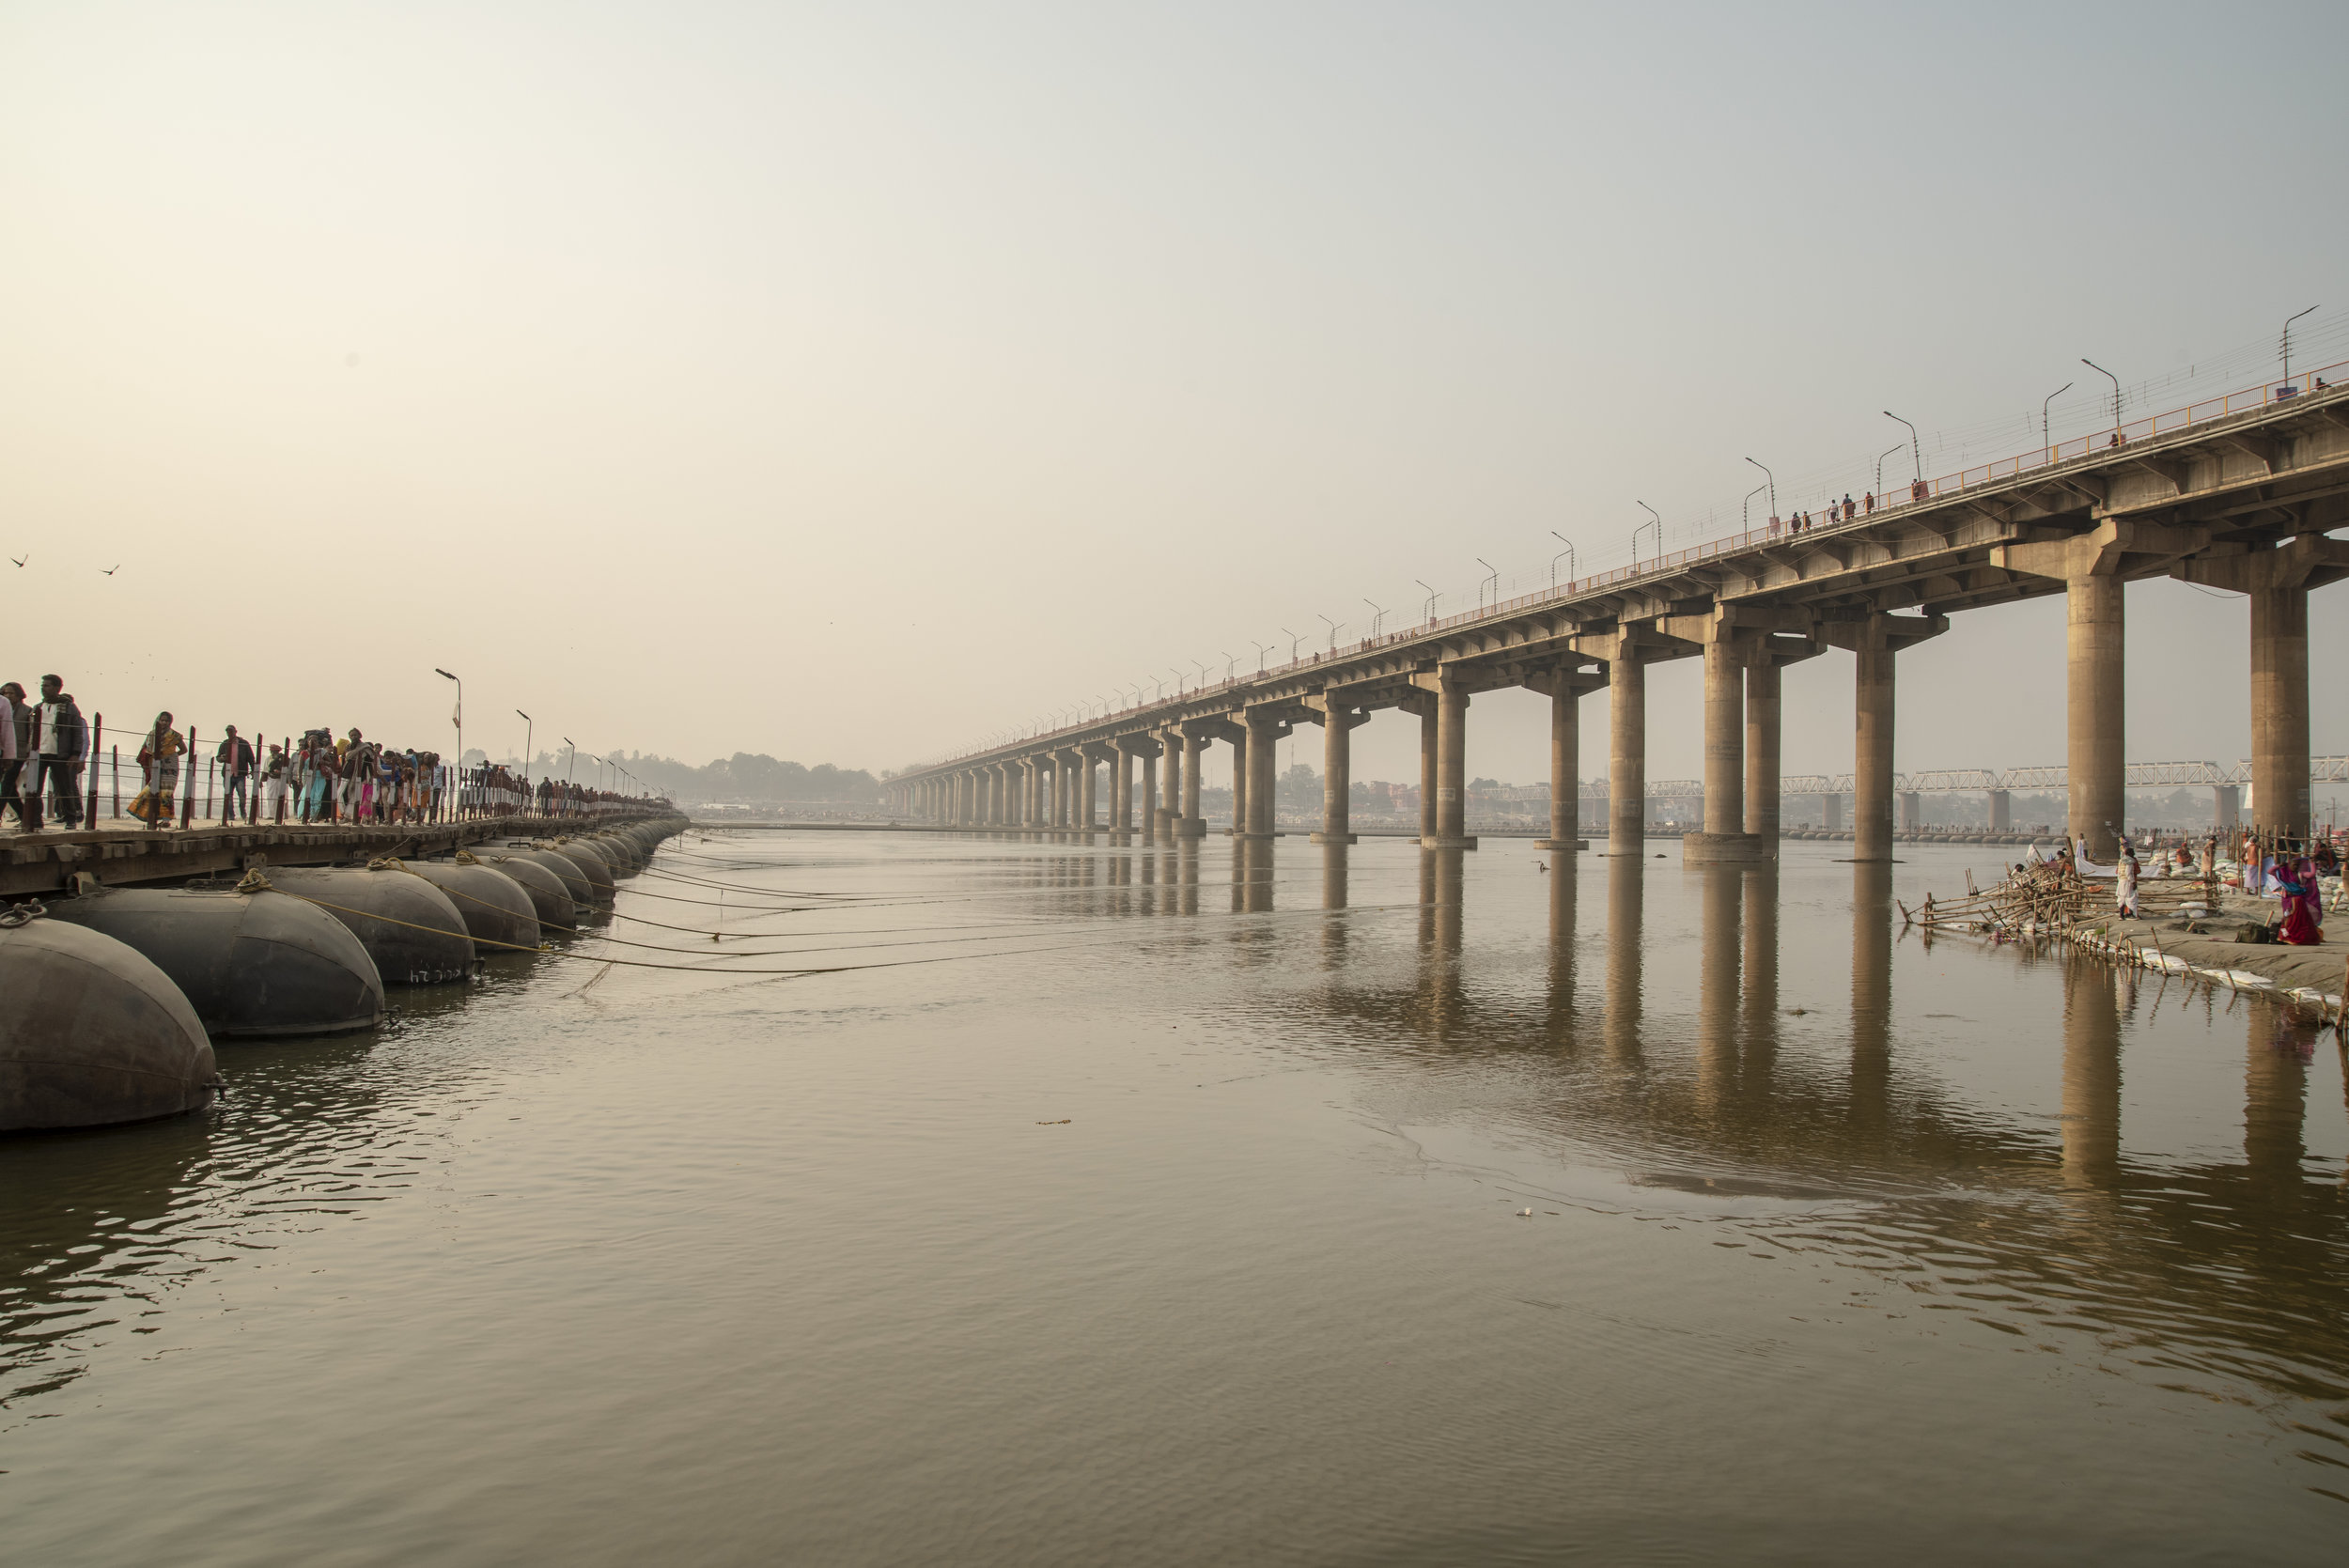 Bridges, both permanent and temporary, span the Ganges, providing passage to and from the Mela.